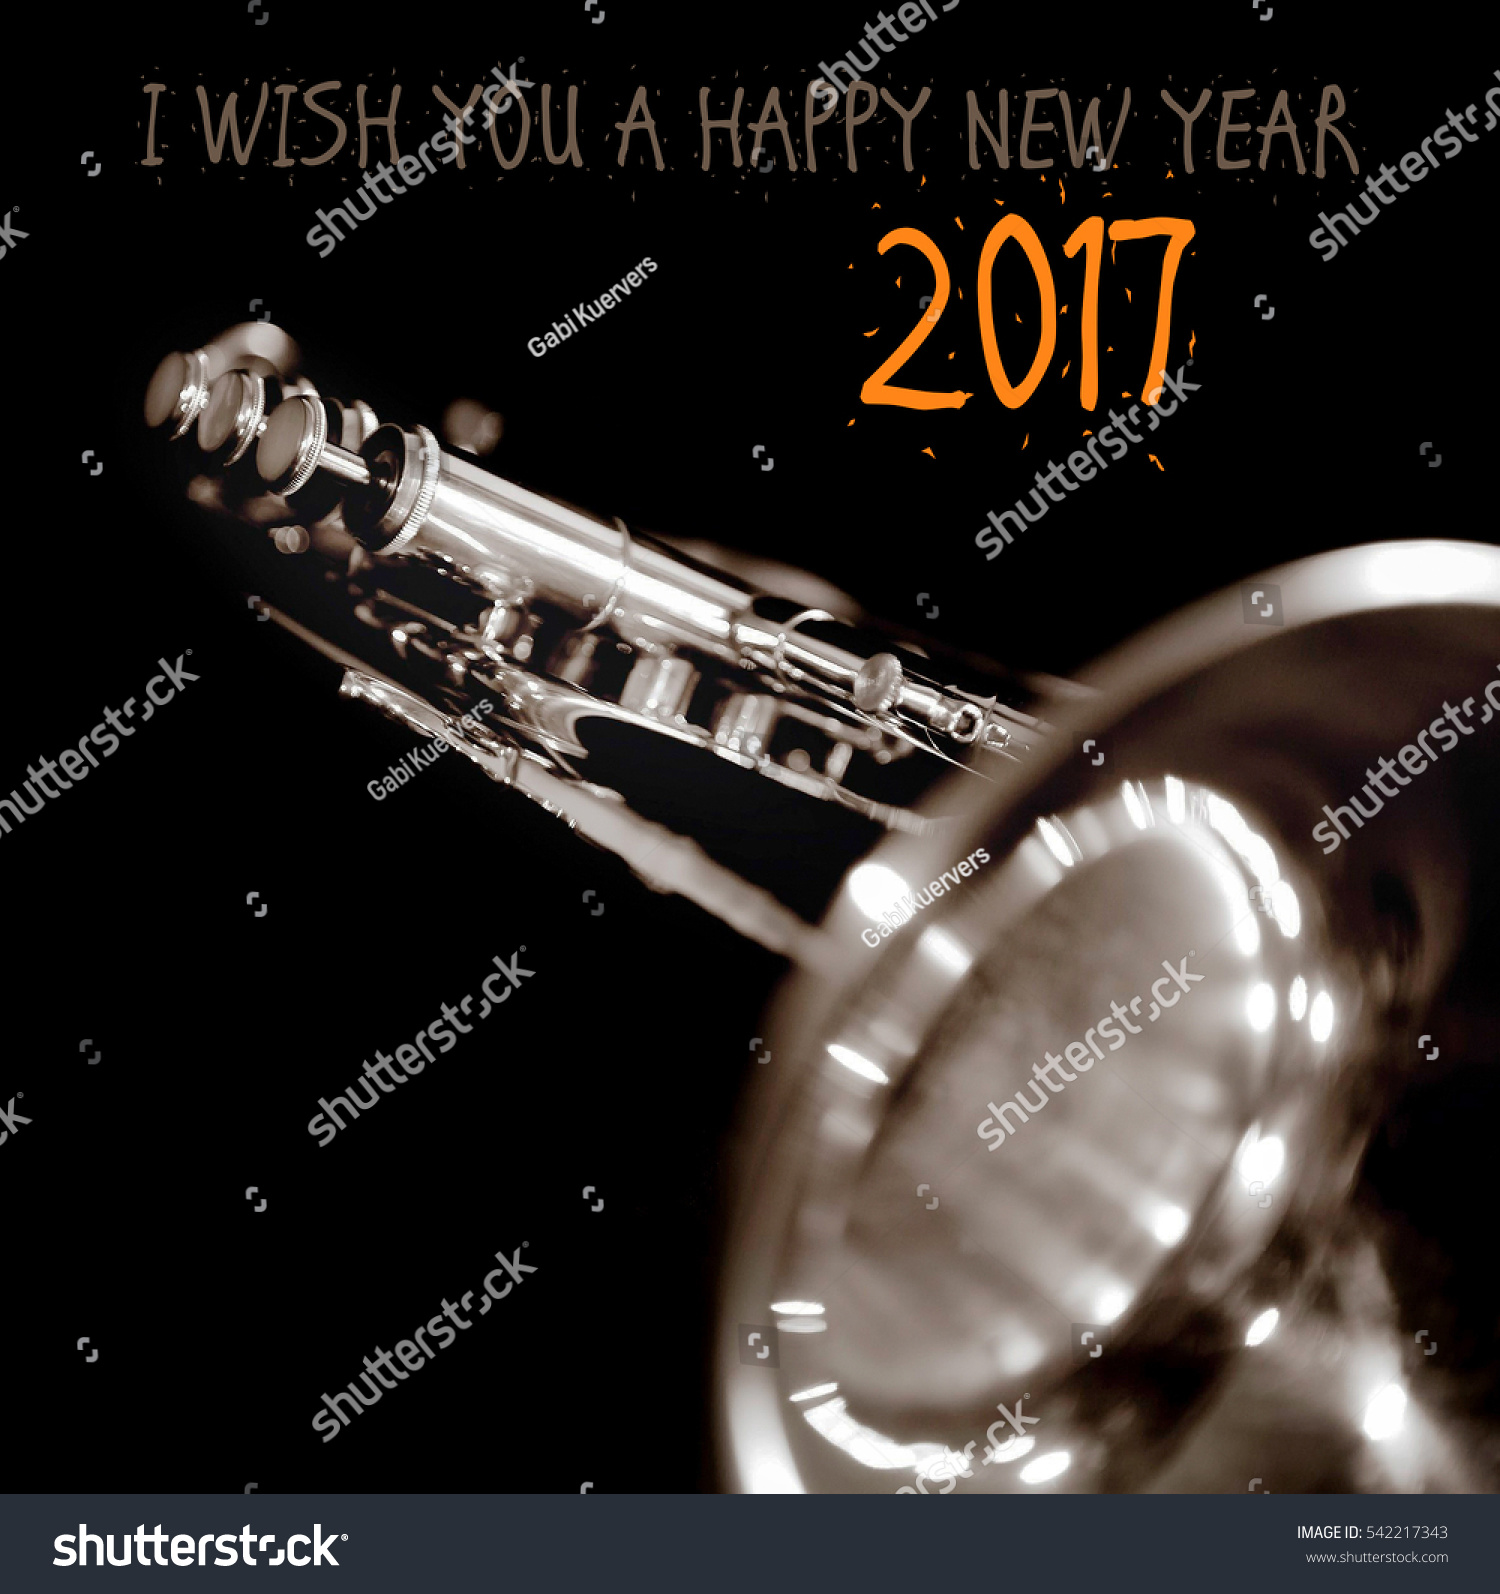 Happy new year 2017 greeting card stock photo 100 legal protection happy new year 2017 a greeting card with a music instrument m4hsunfo